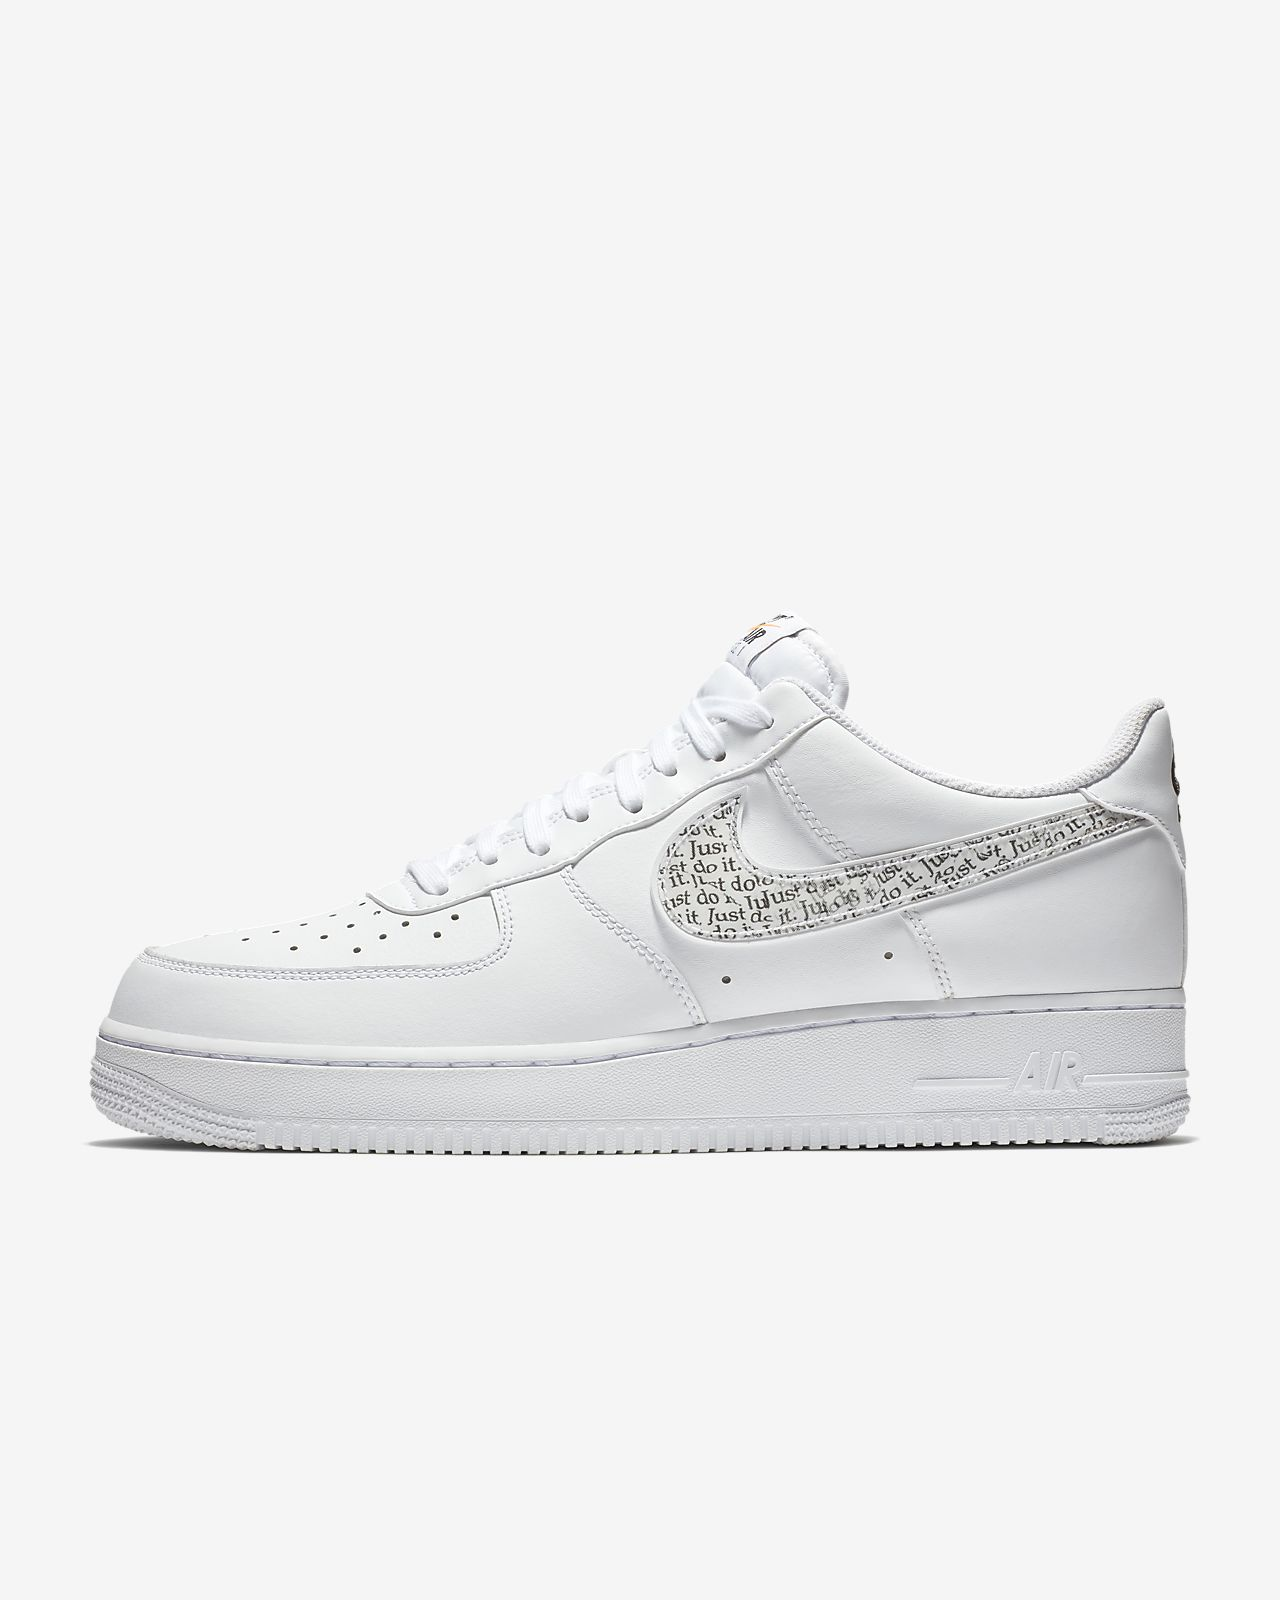 773e3bf1228c Nike Air Force 1  07 LV8 JDI LNTC Men s Shoe. Nike.com FI